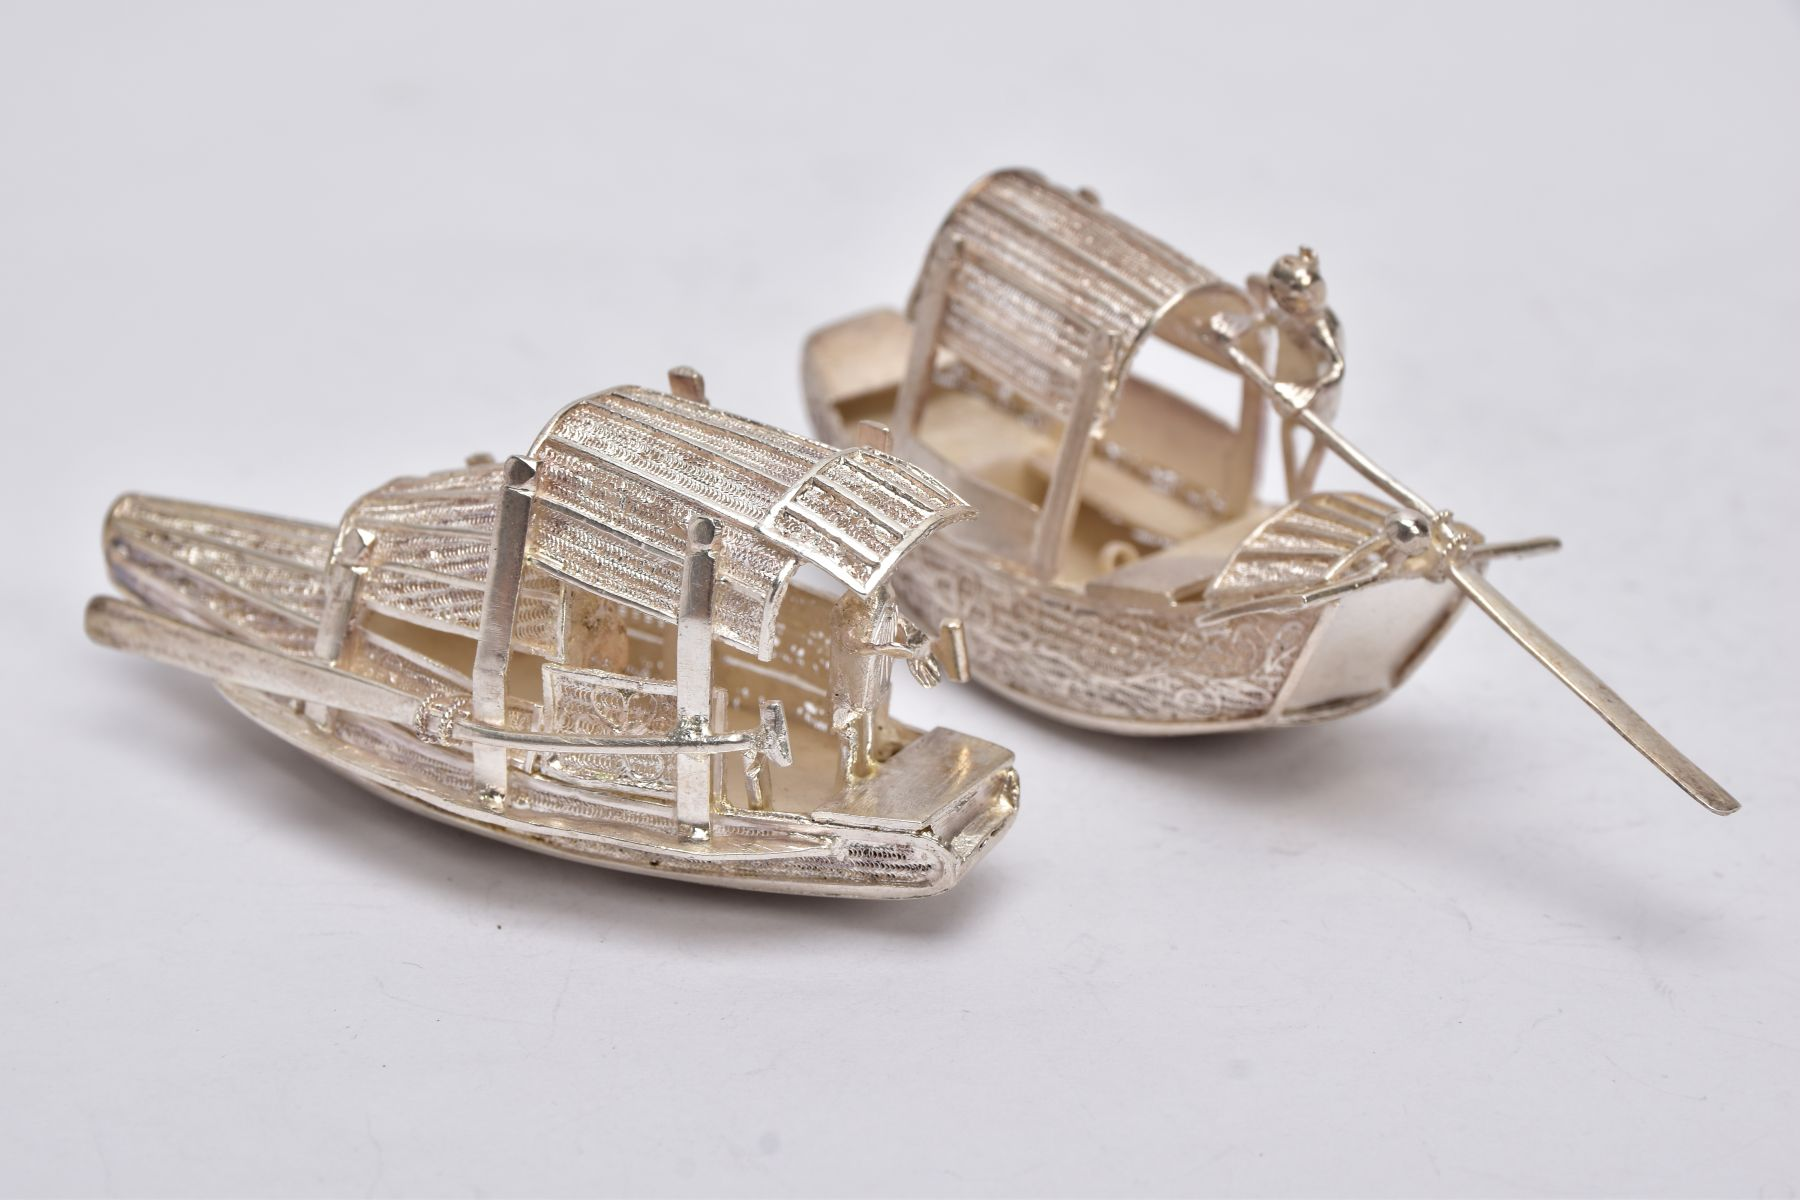 TWO MODERN ORIENTAL, WHITE METAL FILIGREE BOAT ORNAMENTS, one with a standing figure with paddle, - Image 6 of 8